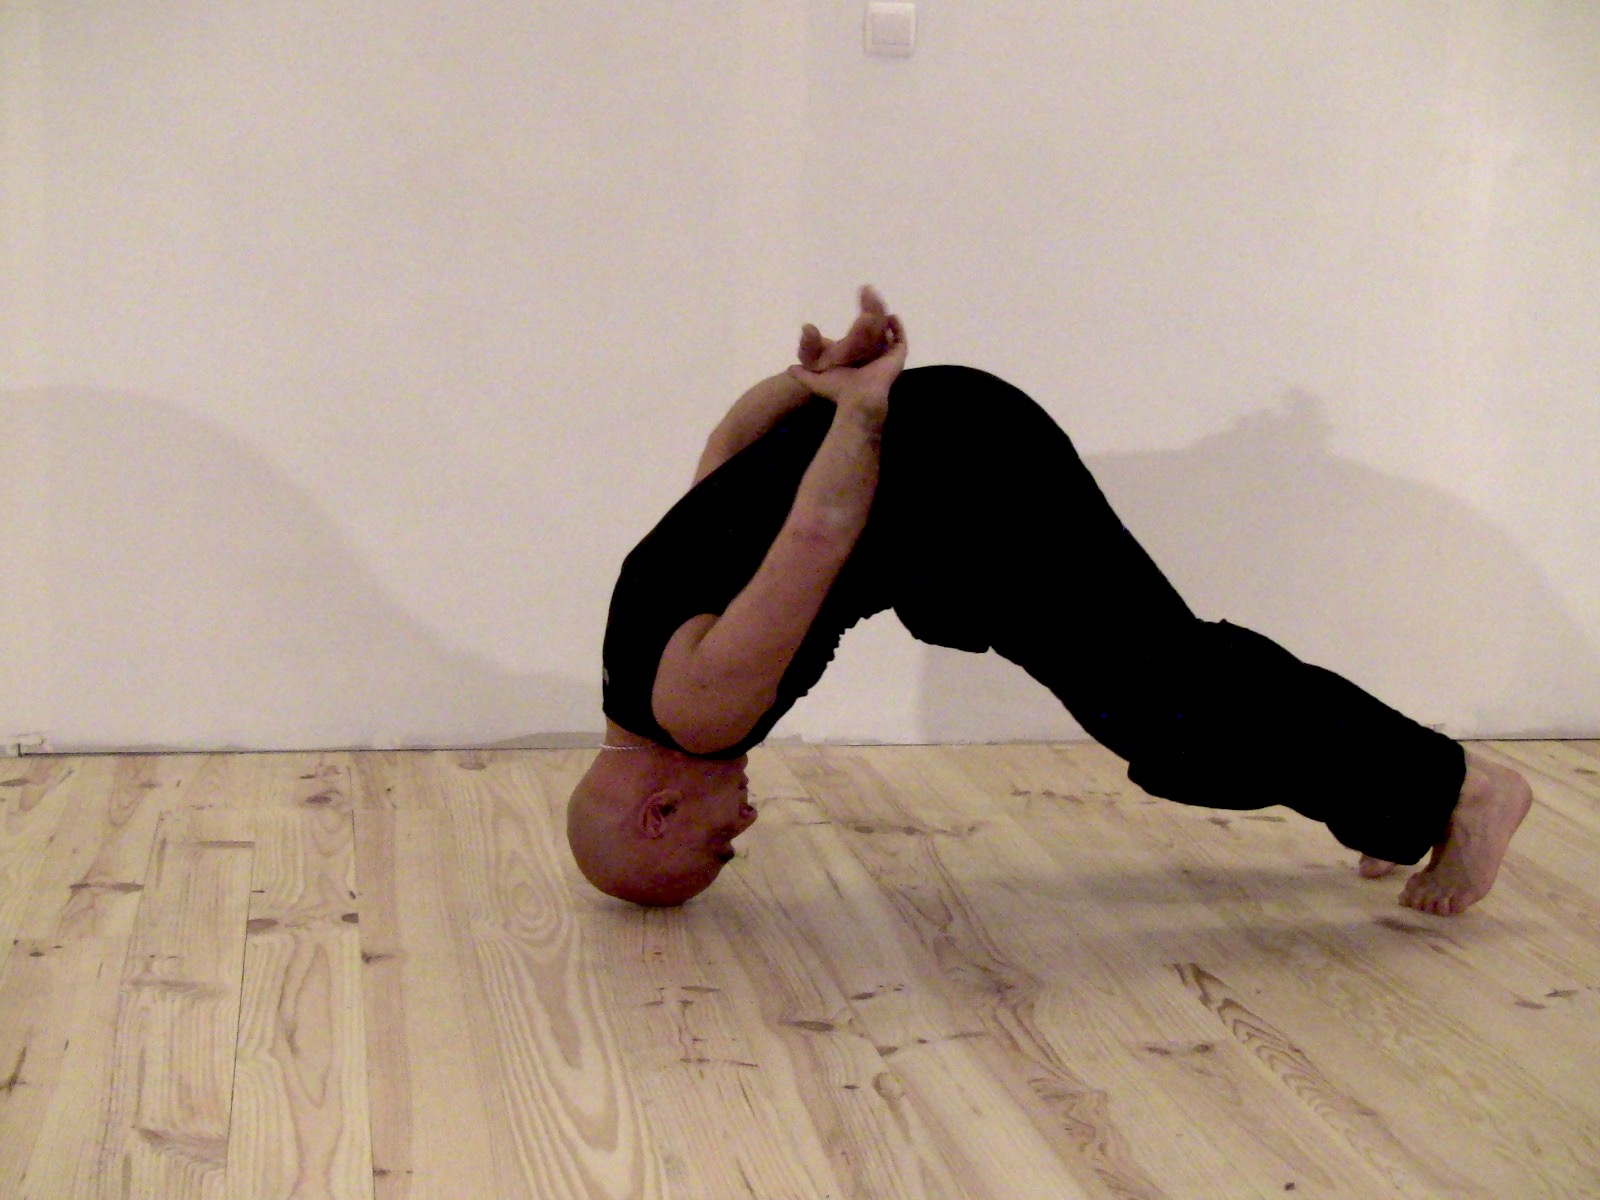 A more challenging posture form the tao yoga series.